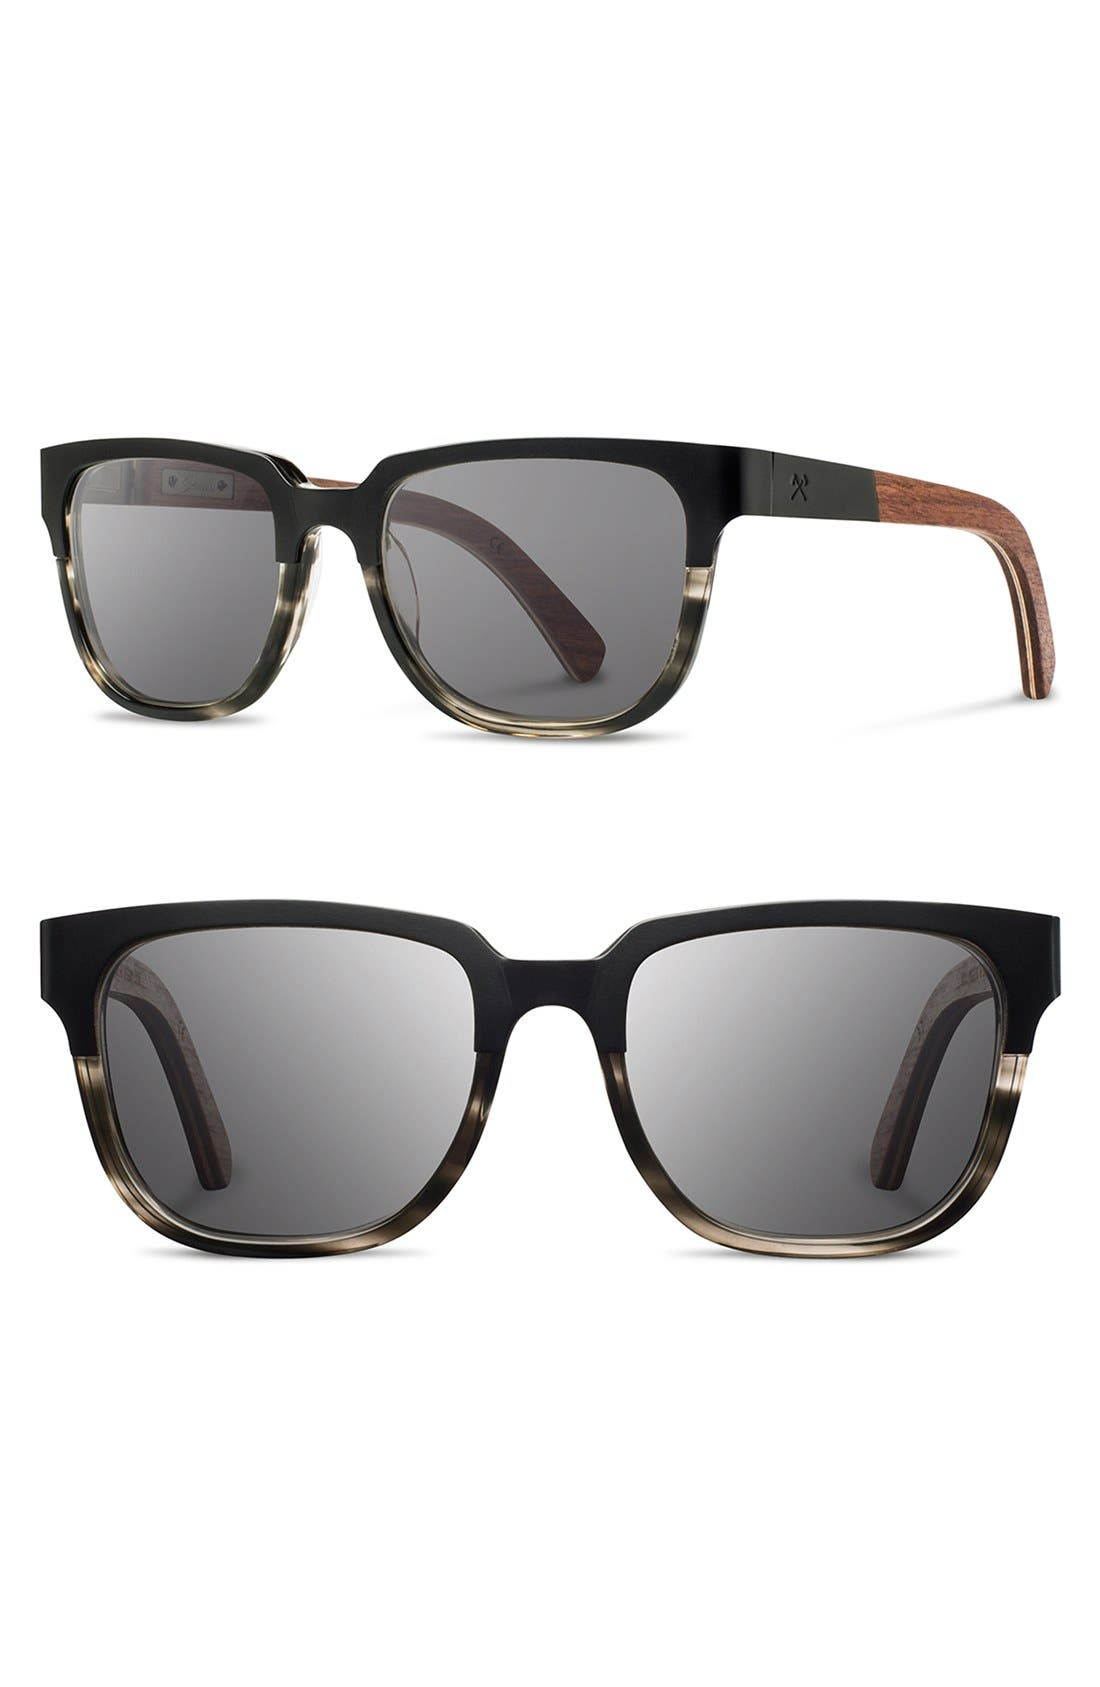 Main Image - Shwood 'Prescott' 52mm Titanium & Wood Sunglasses